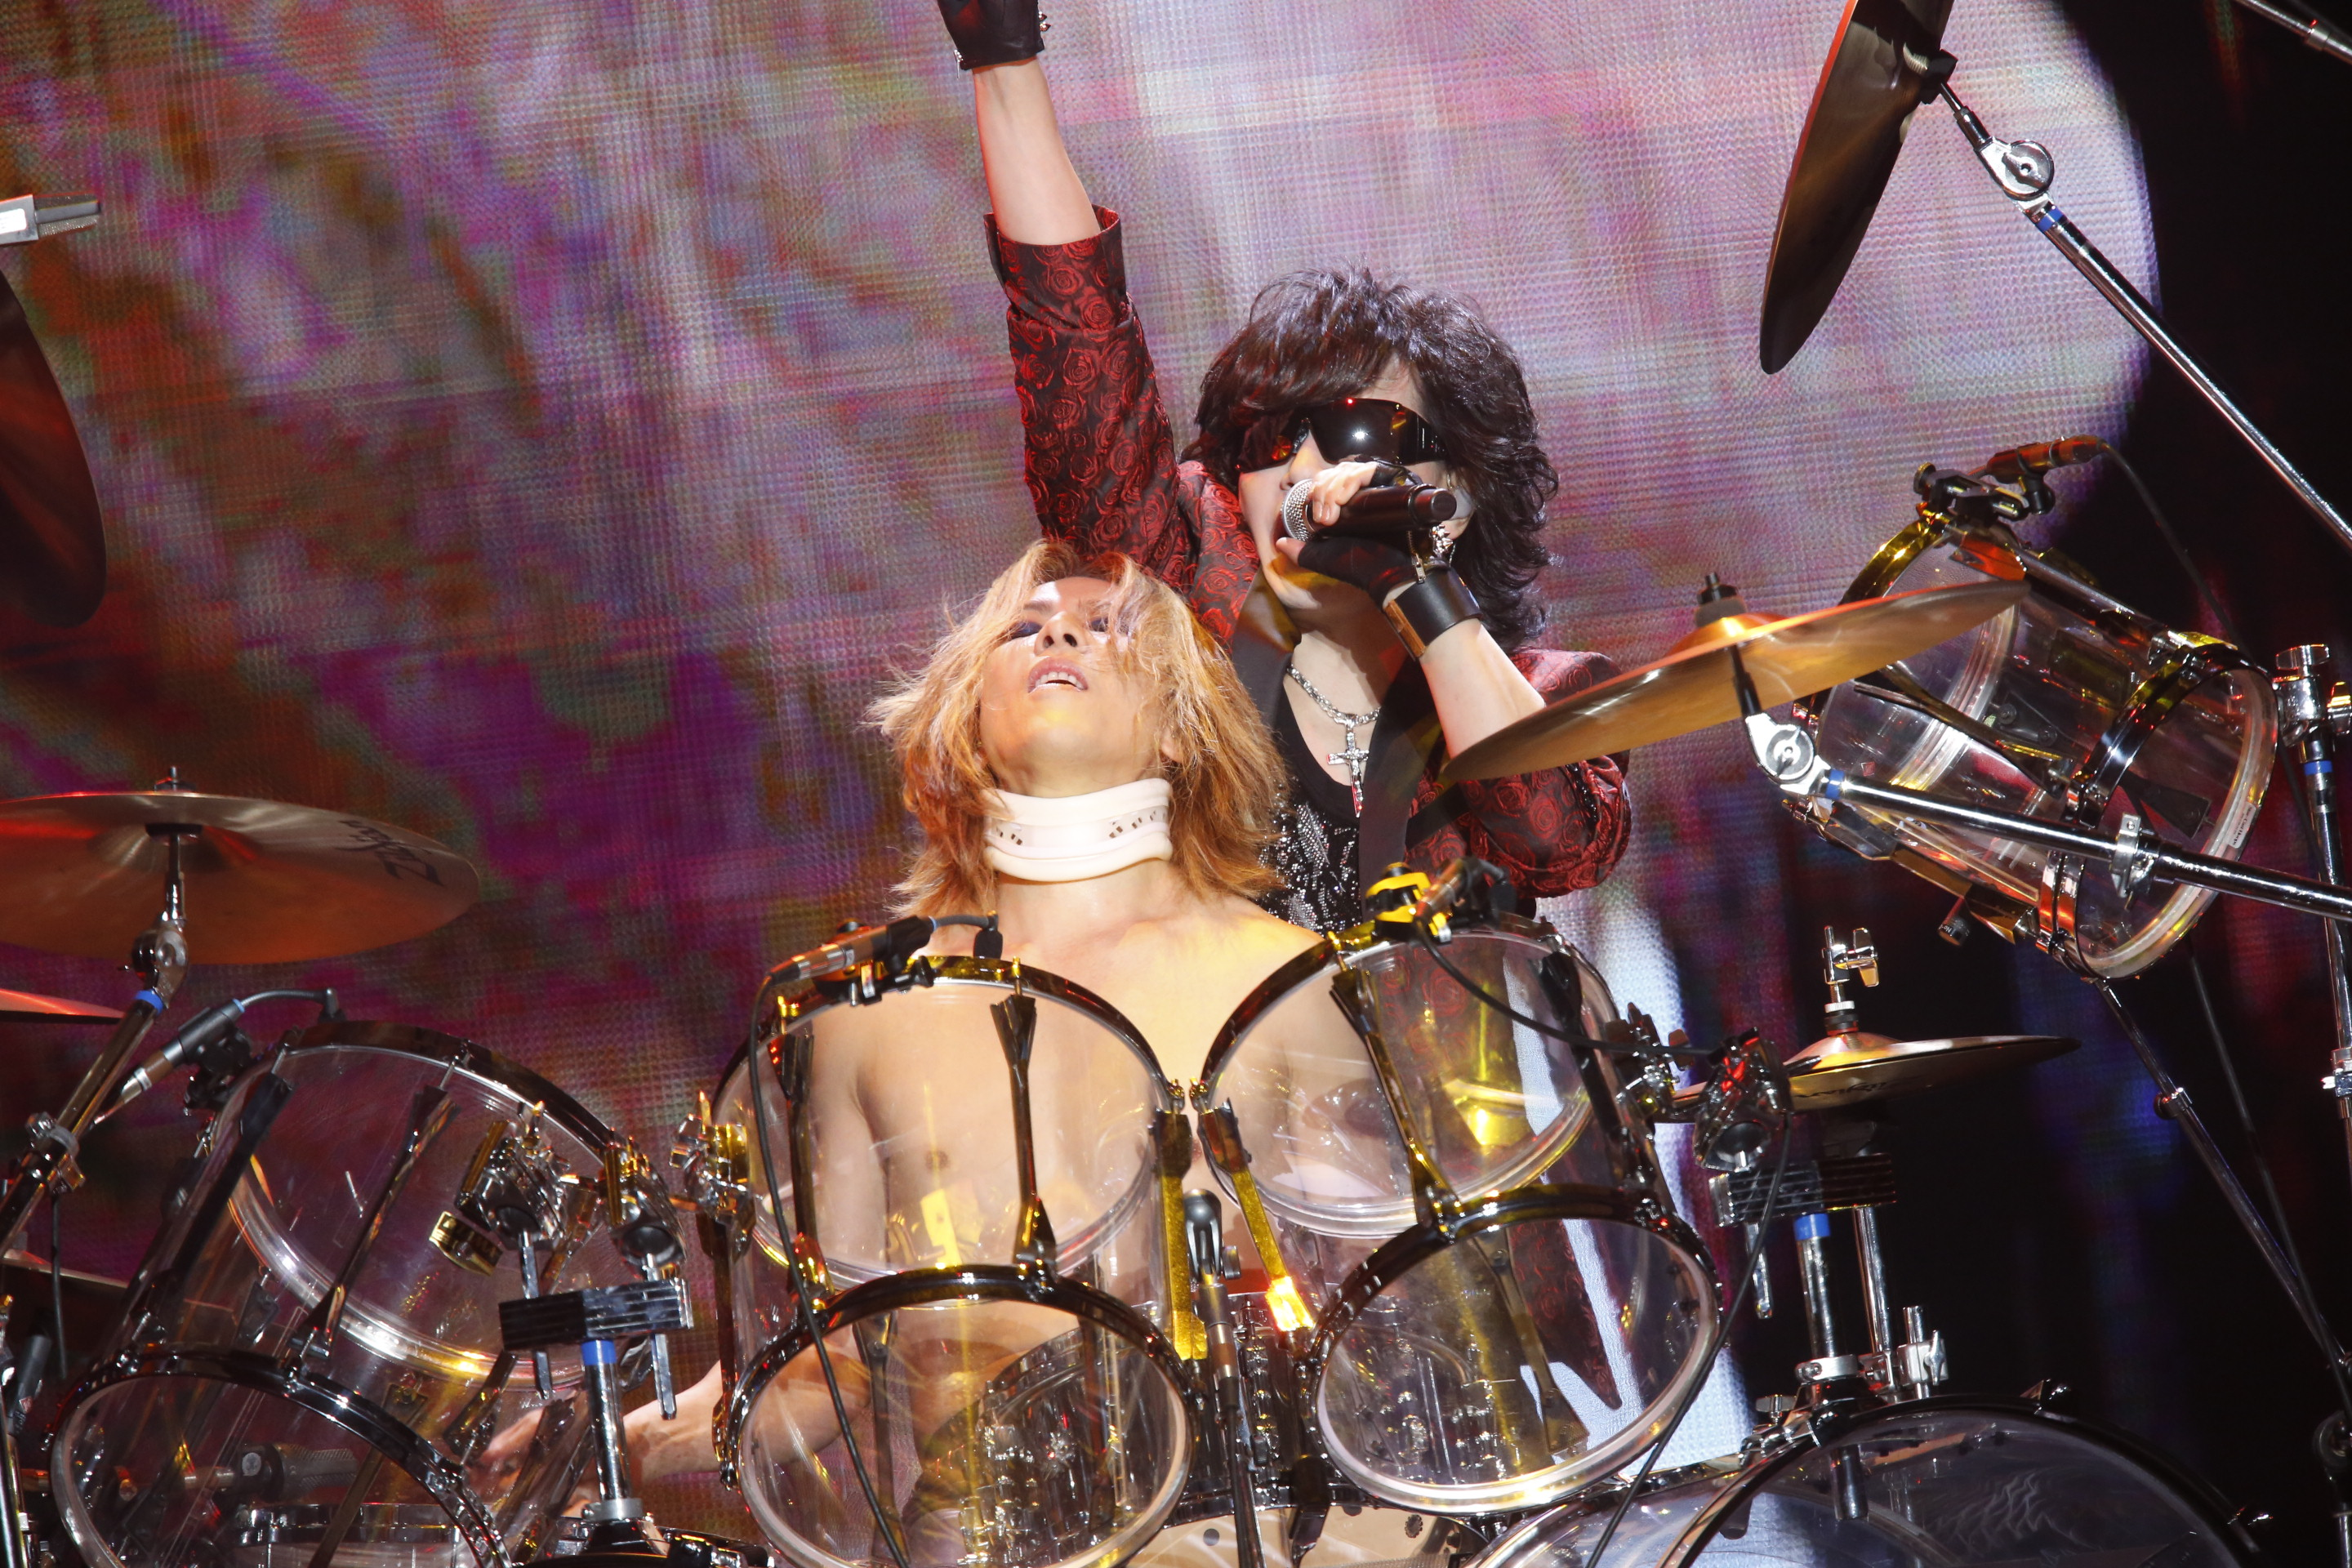 Staging a return: Yoshiki (on drums) and Toshl perform at Yokohama Arena as part of an X Japan tour on Dec. 1.